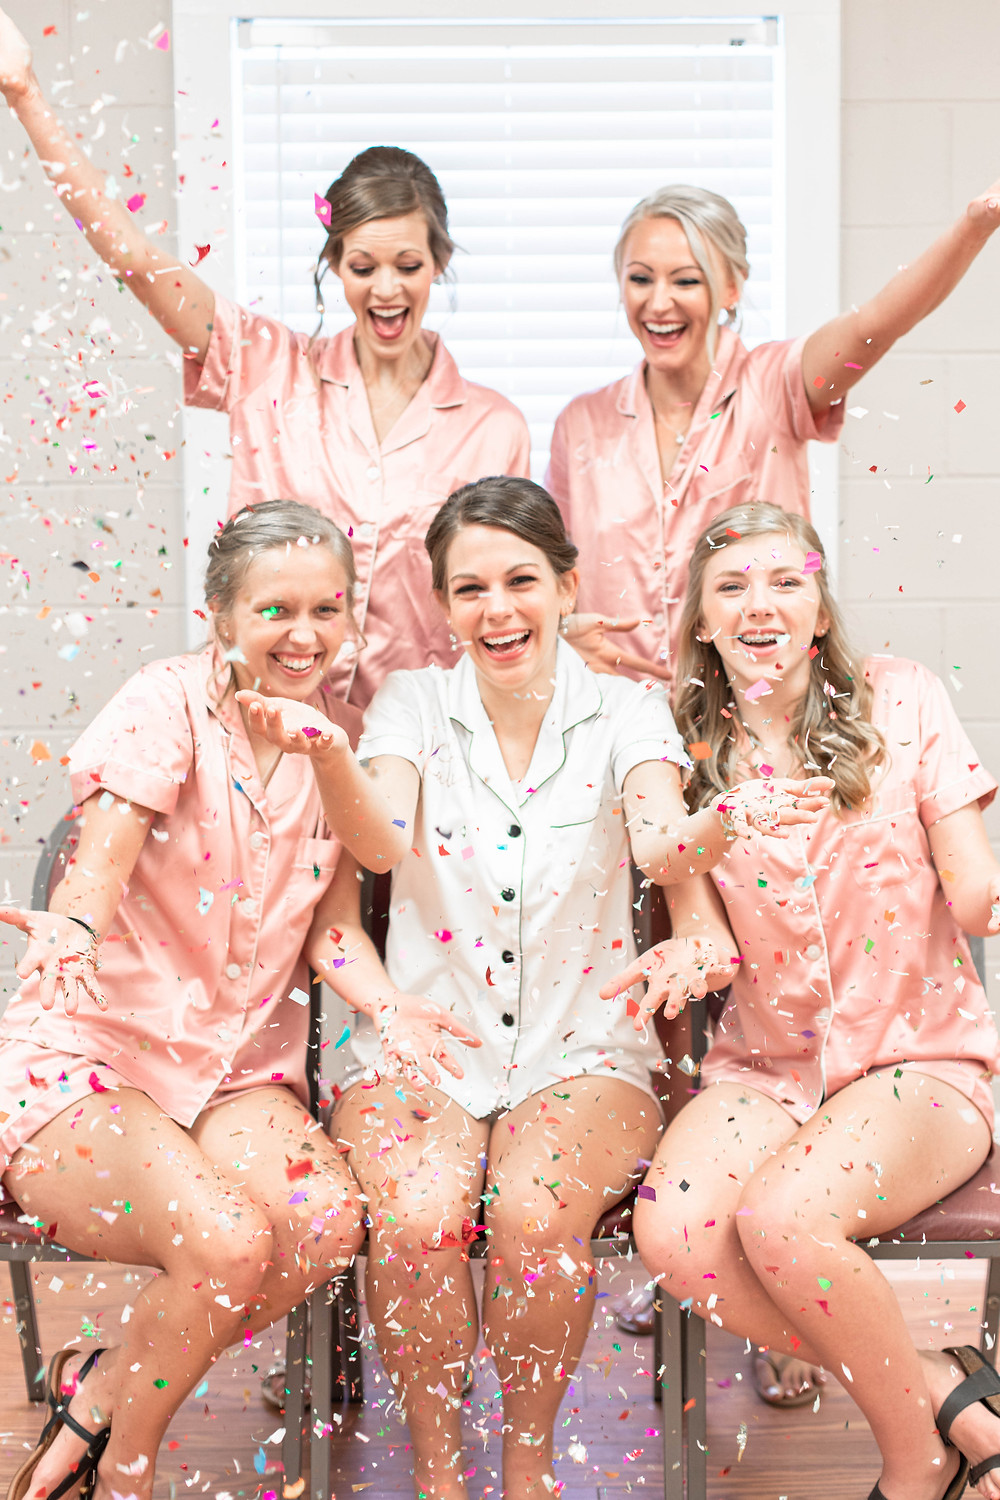 Bride and Bridesmaids tossing confetti celebration matching pjs Milledgeville Georgia